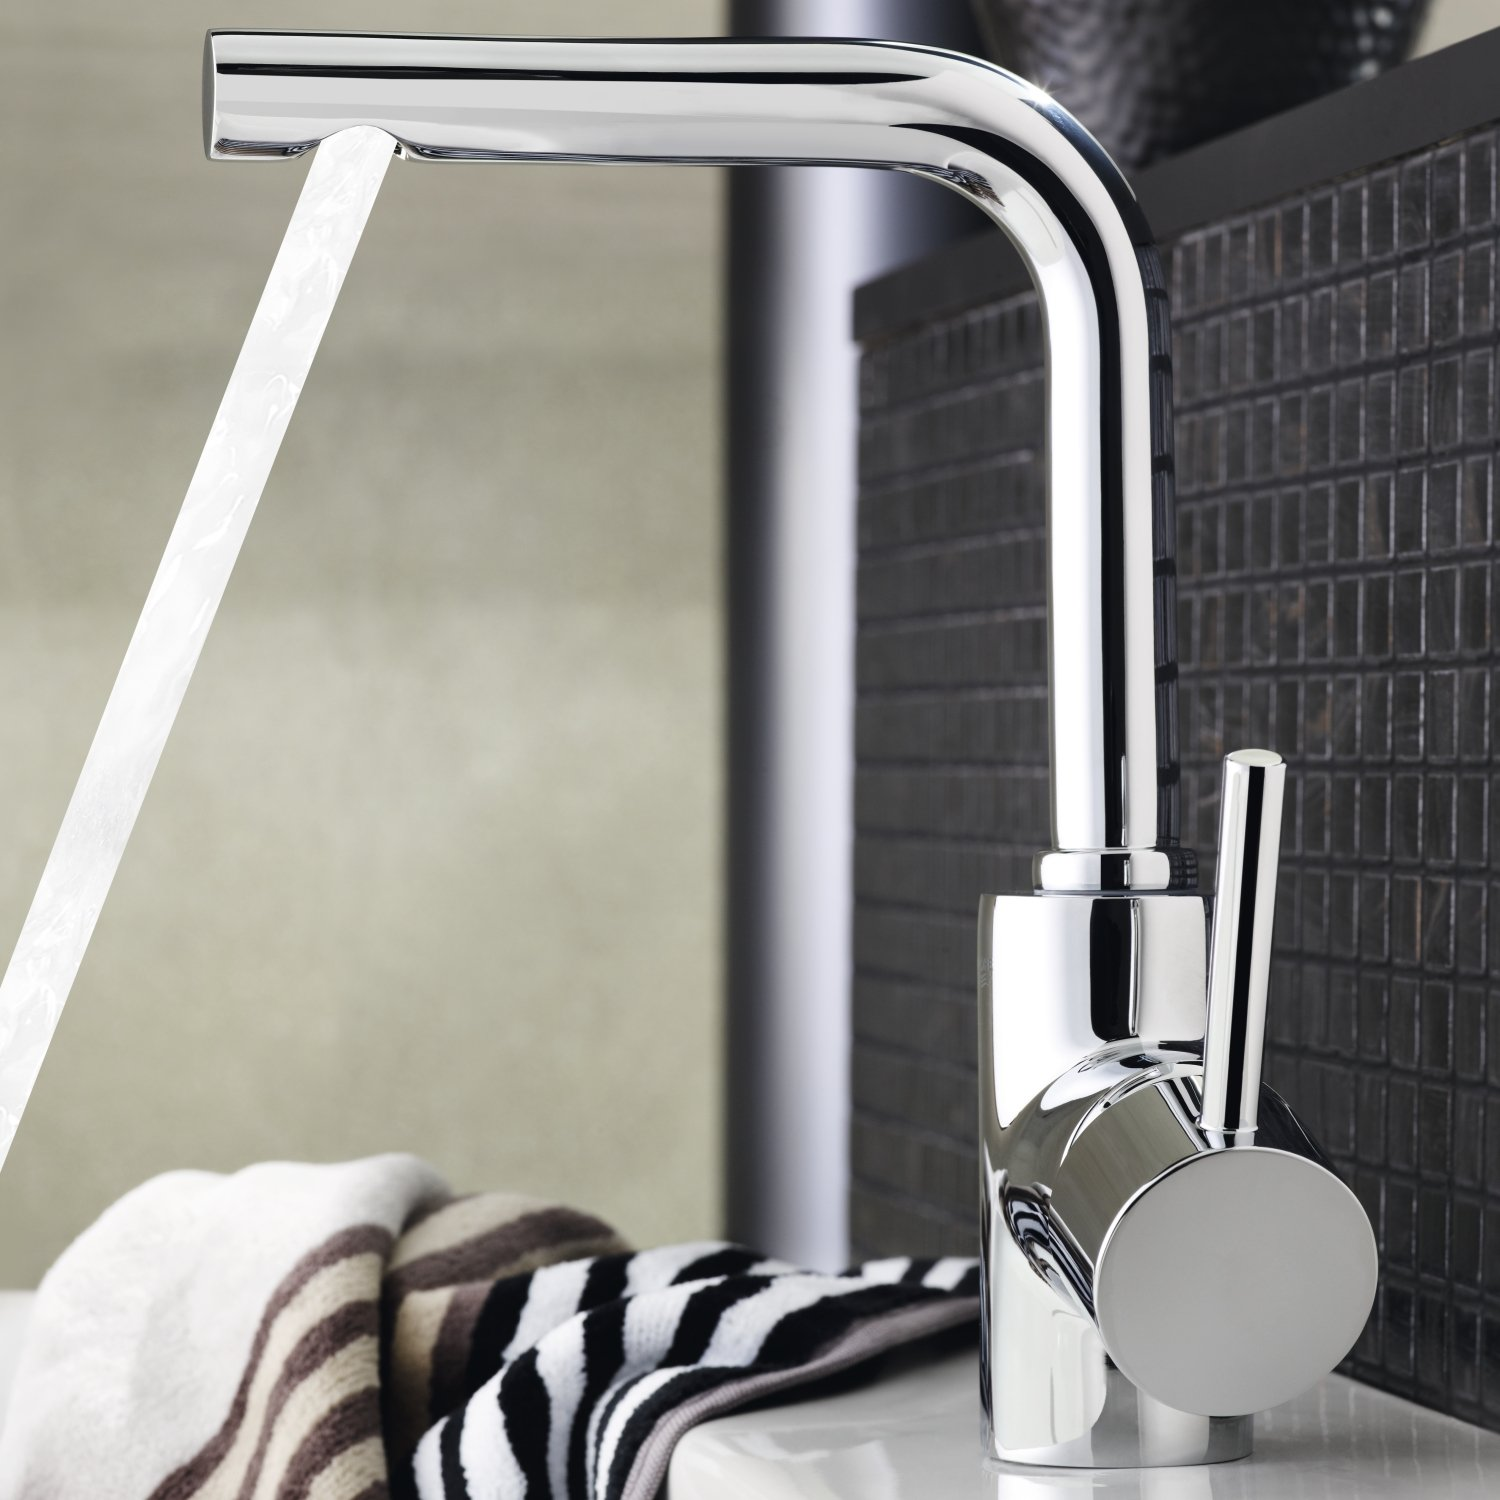 Grohe Essence Single Lever Basin Mixer Sink Faucet Chrome GENUINE ...